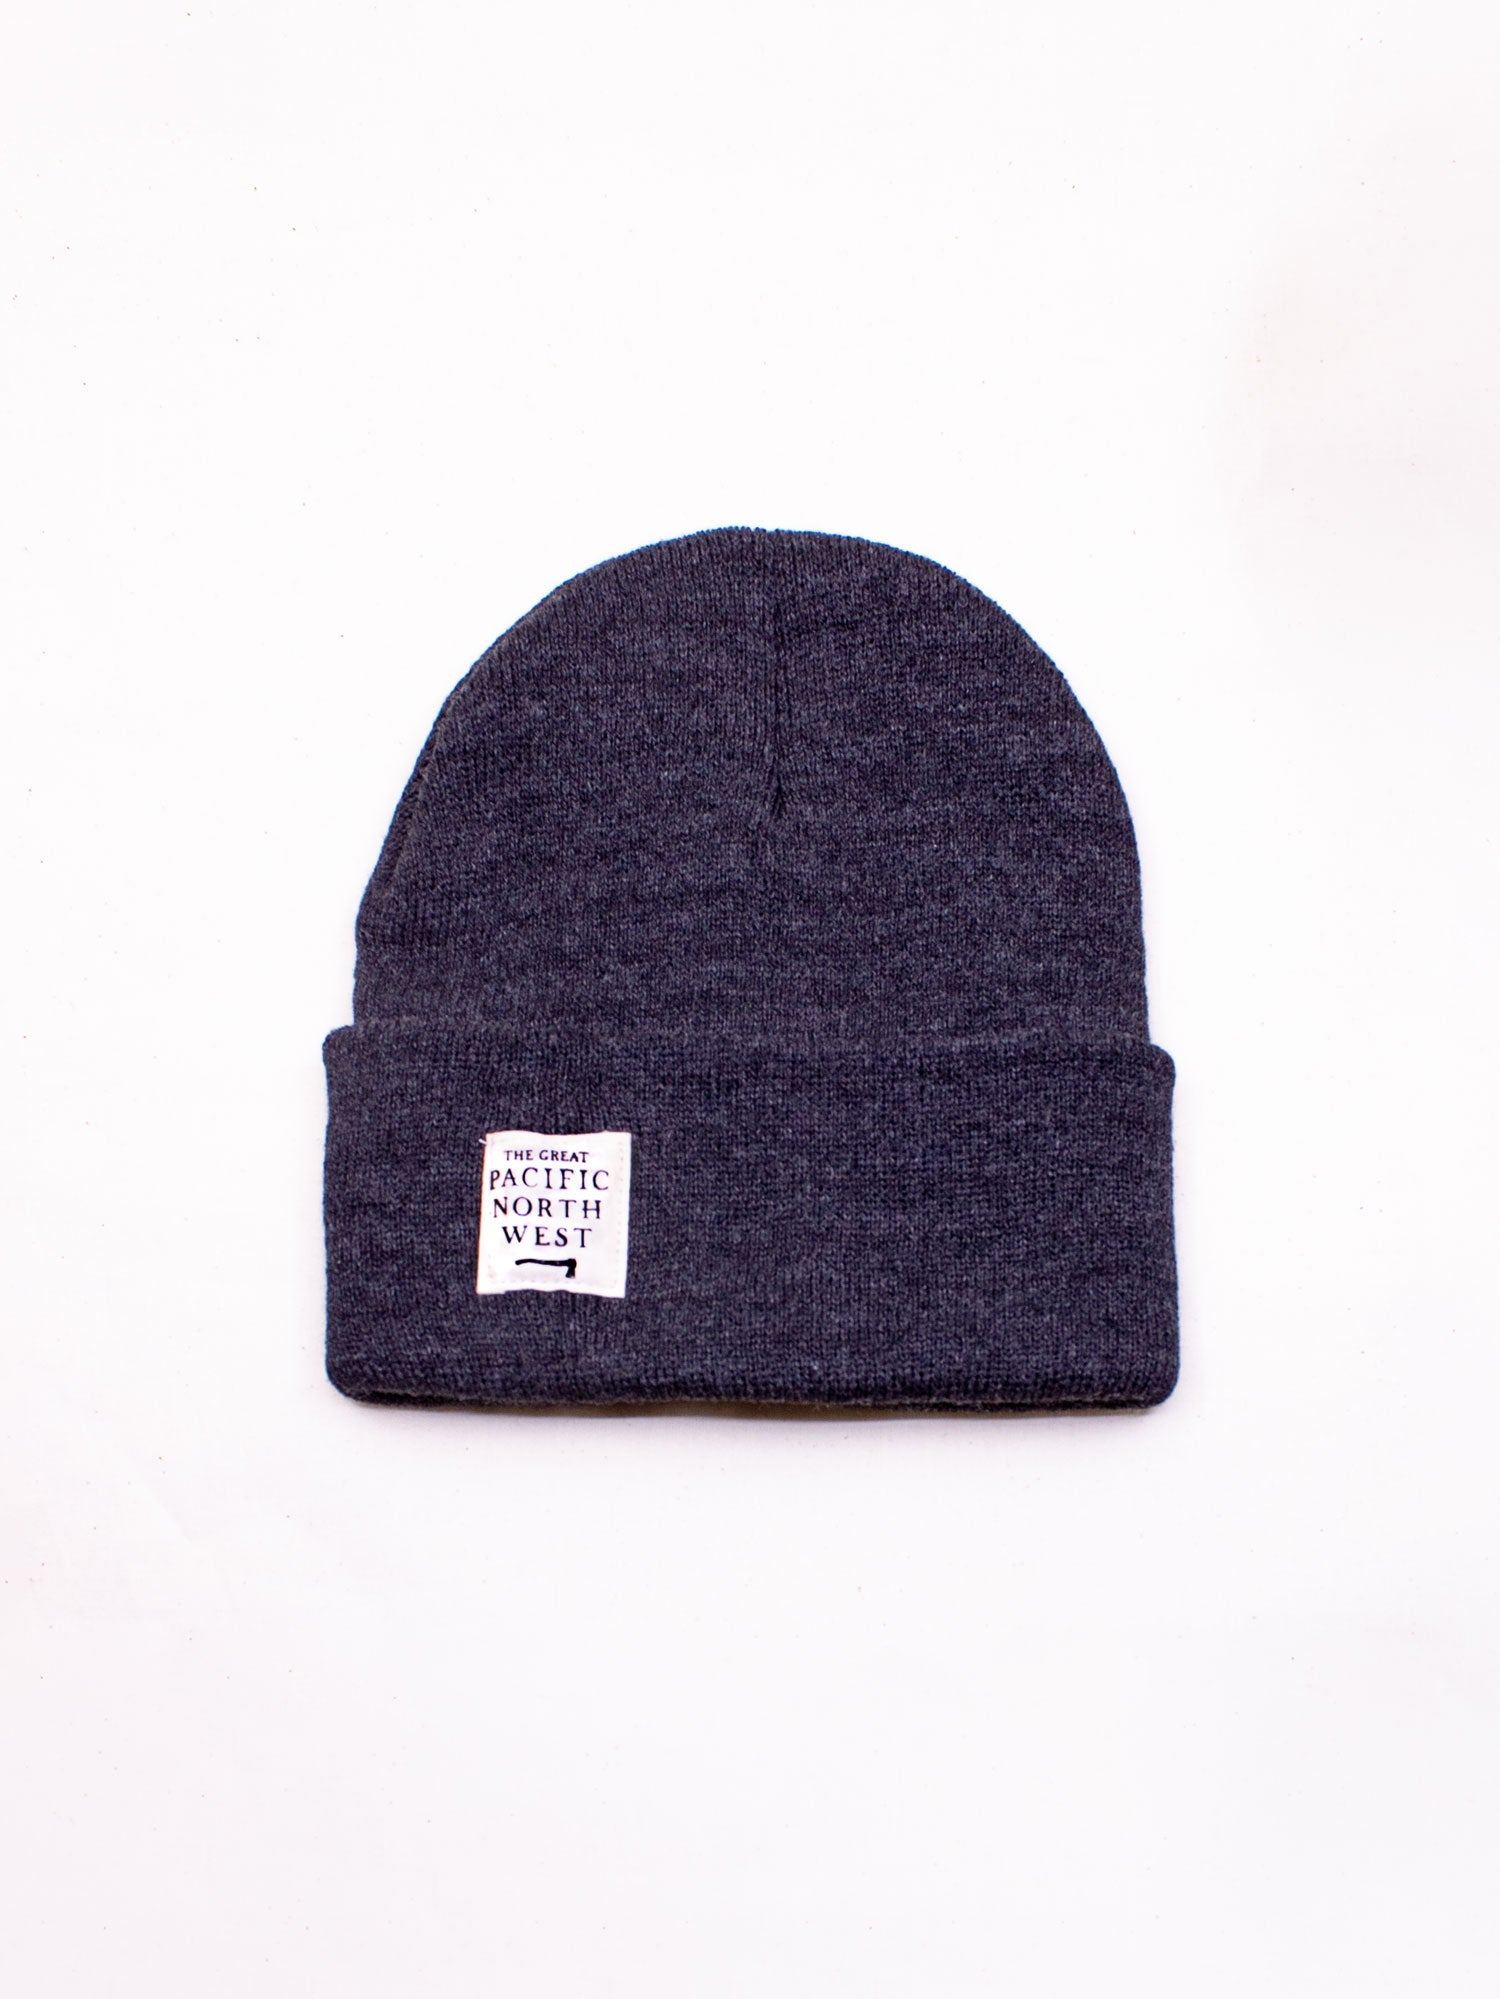 The Great PNW Lumberjack Beanie Charcoal